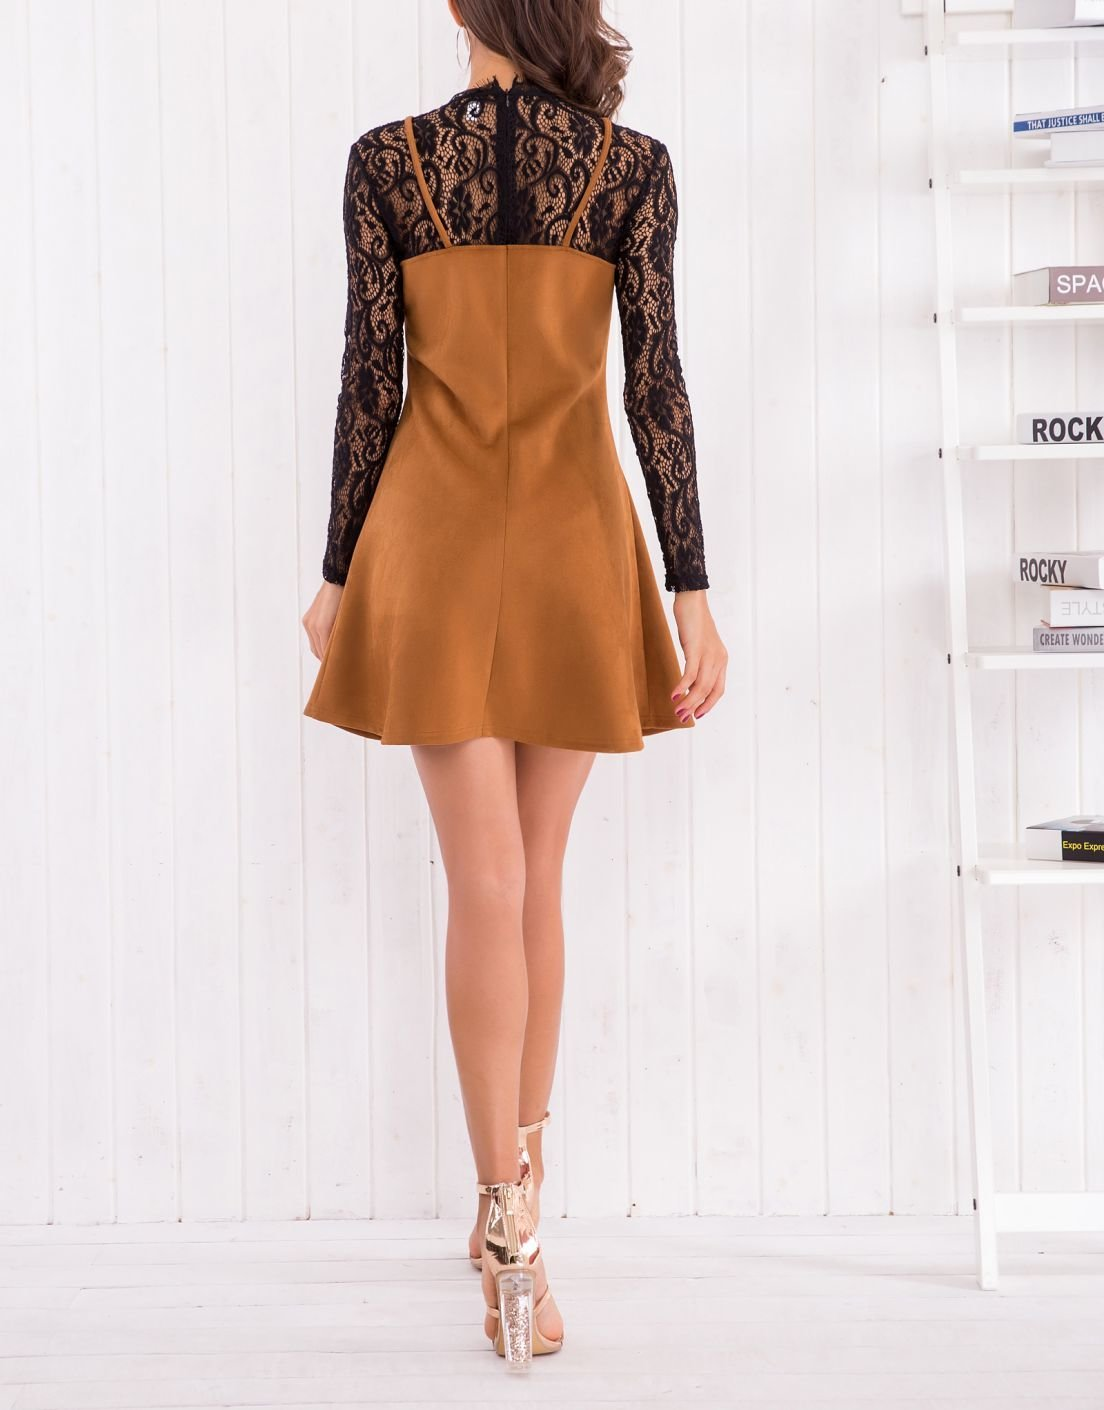 Suedette and Lace Cocktail Dress with Two-Piece Look